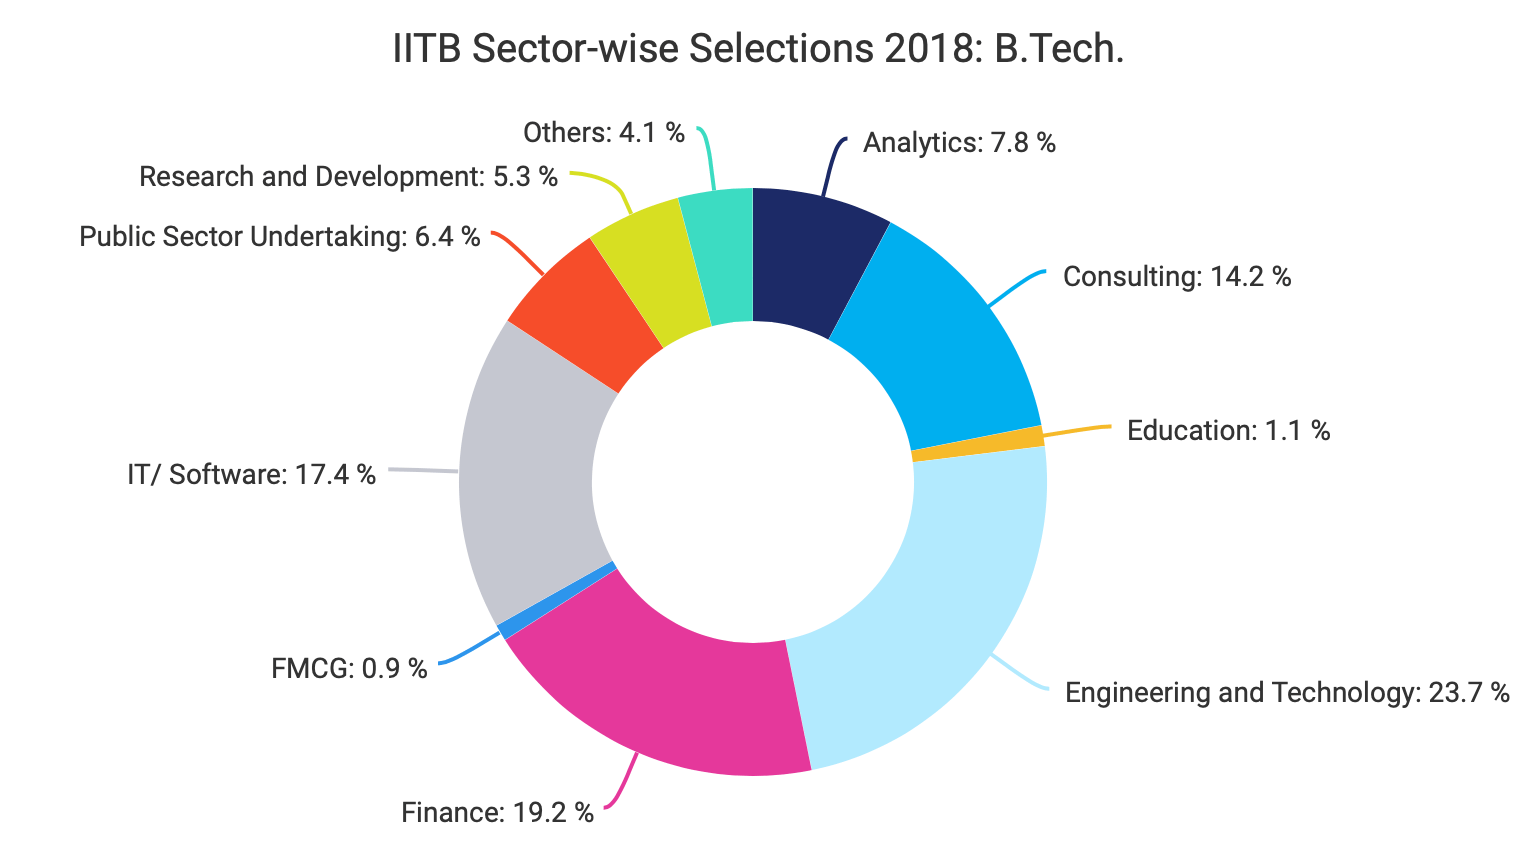 IITB B.Tech Sectorwise Selections 2018